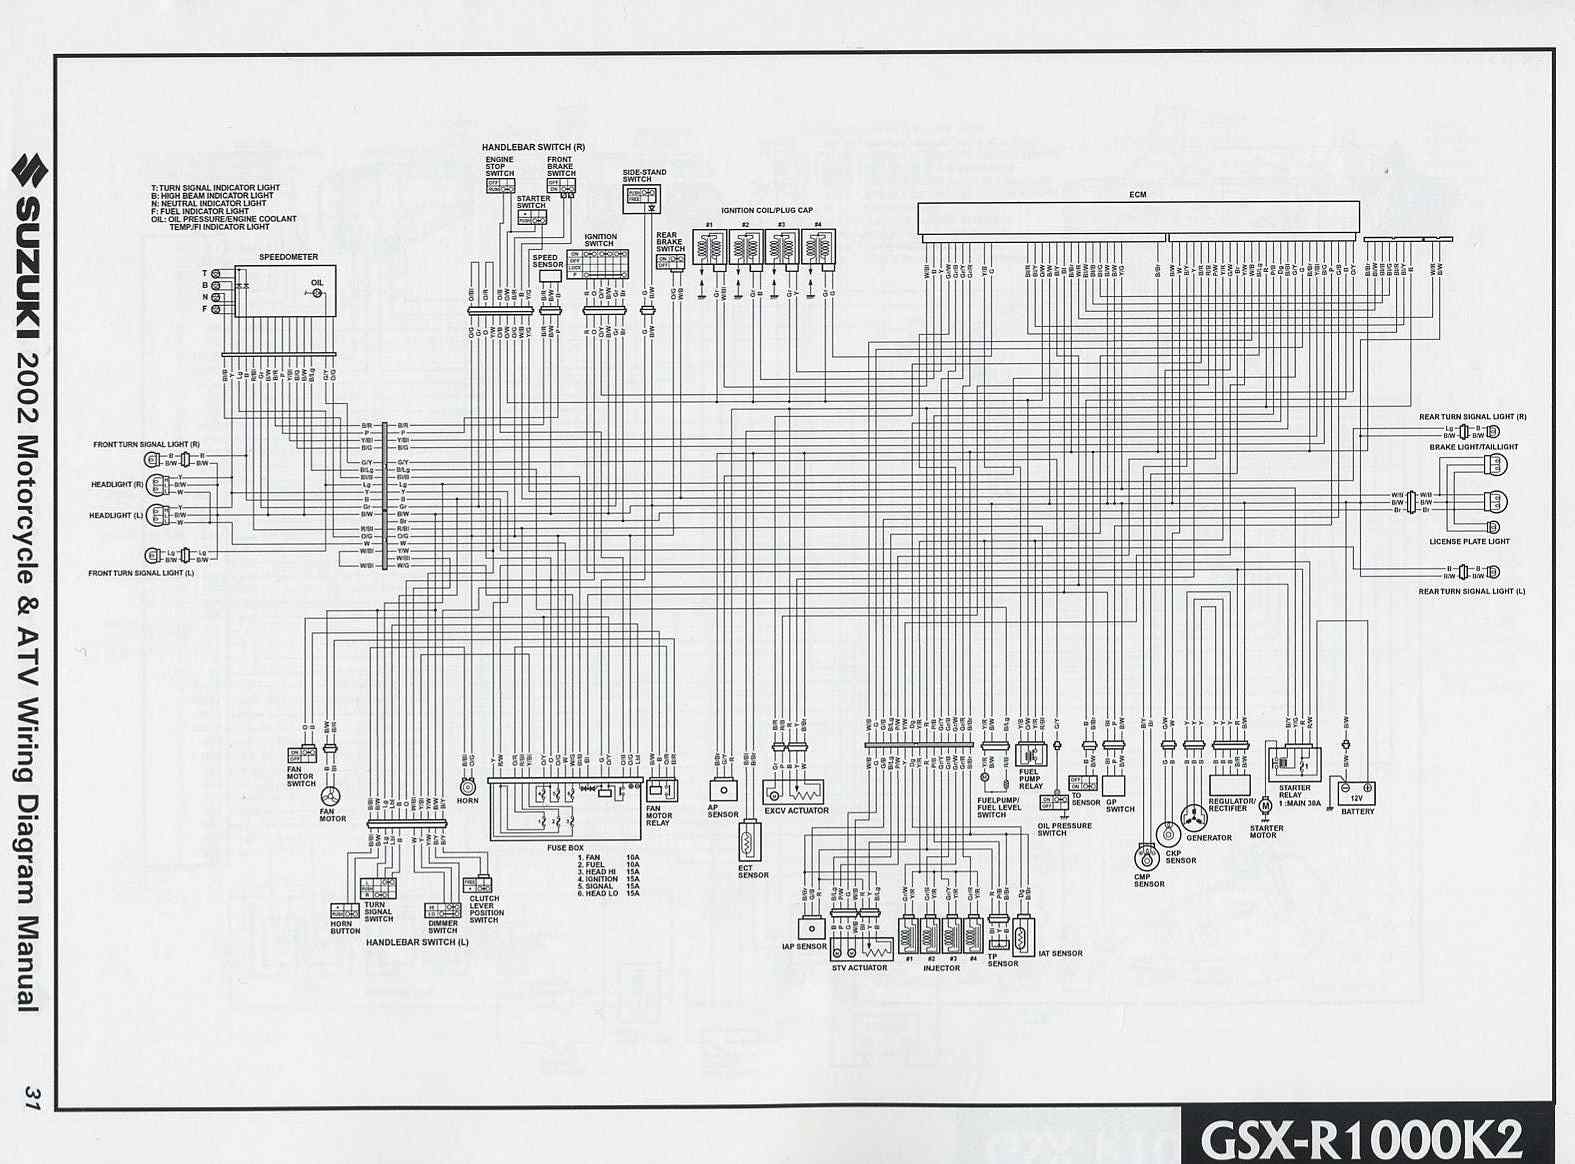 suzuki rf900r wiring diagram wiring diagram for you • 1994 dr350 wiring diagram wiring library rh 81 mml partners de 1994 suzuki rf900r 1994 suzuki